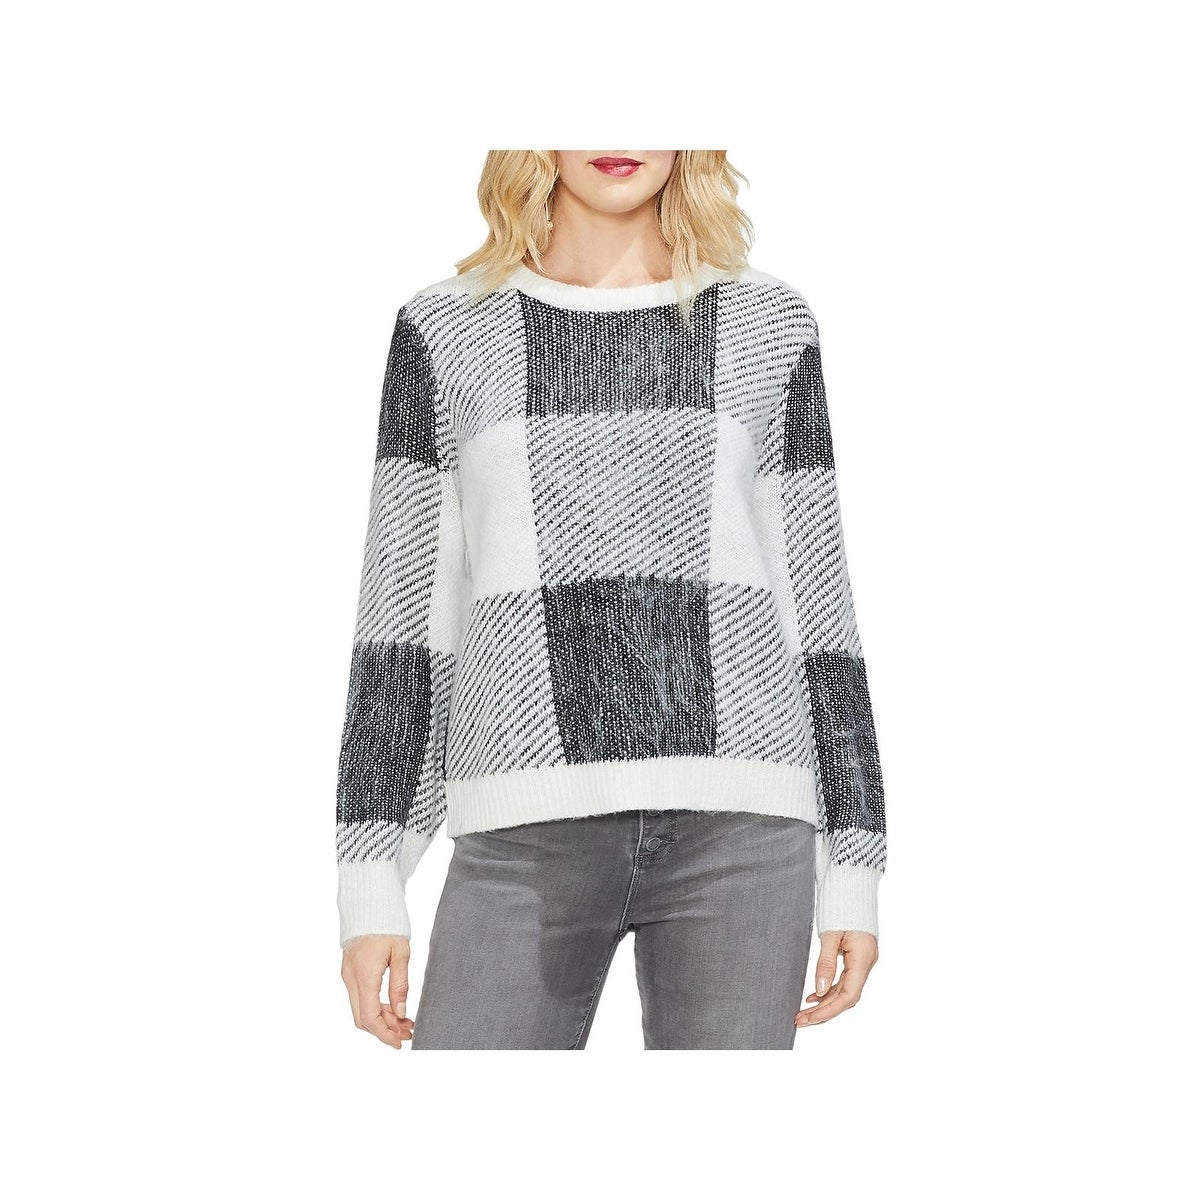 Clothing Deals Women's Vince Camuto Great SweatersFind PiTXuOZwk